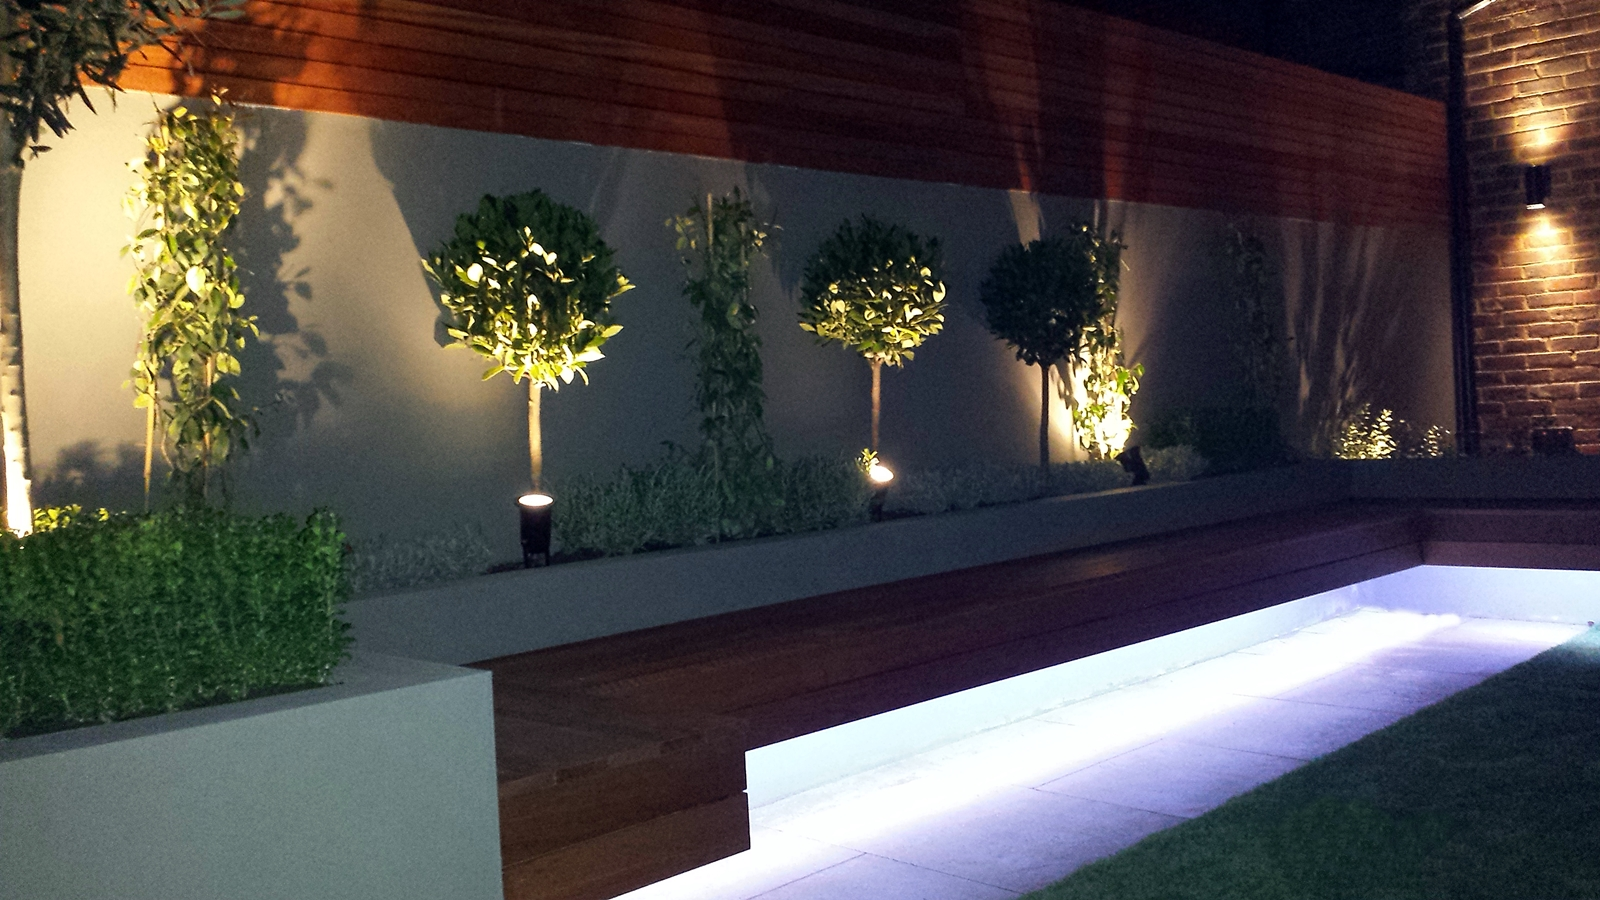 Modern small garden design clapham battersea balham london for Modern garden ideas